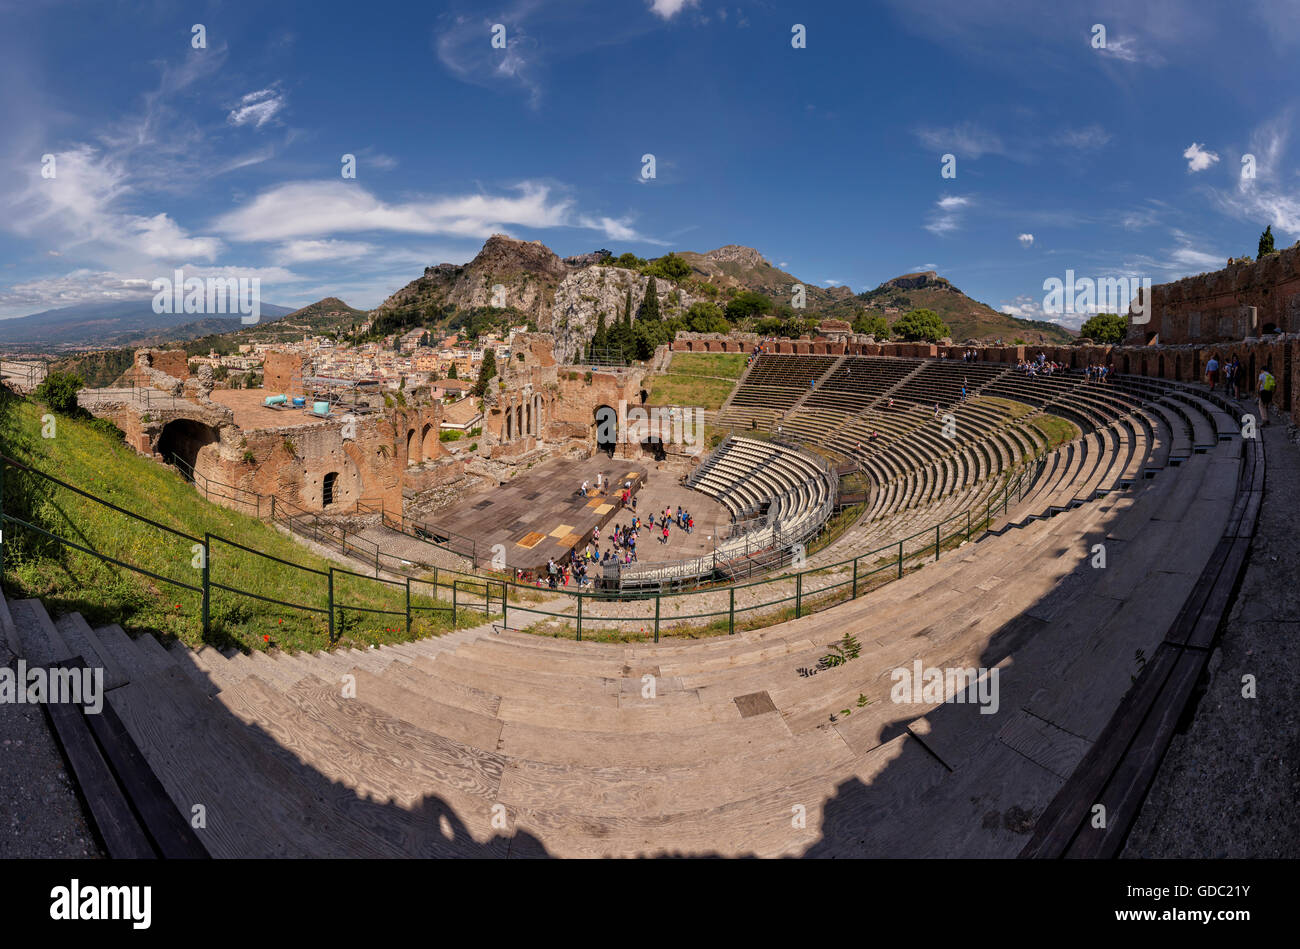 Ancient Greek theatre with a view towards Mount Etna - Stock Image